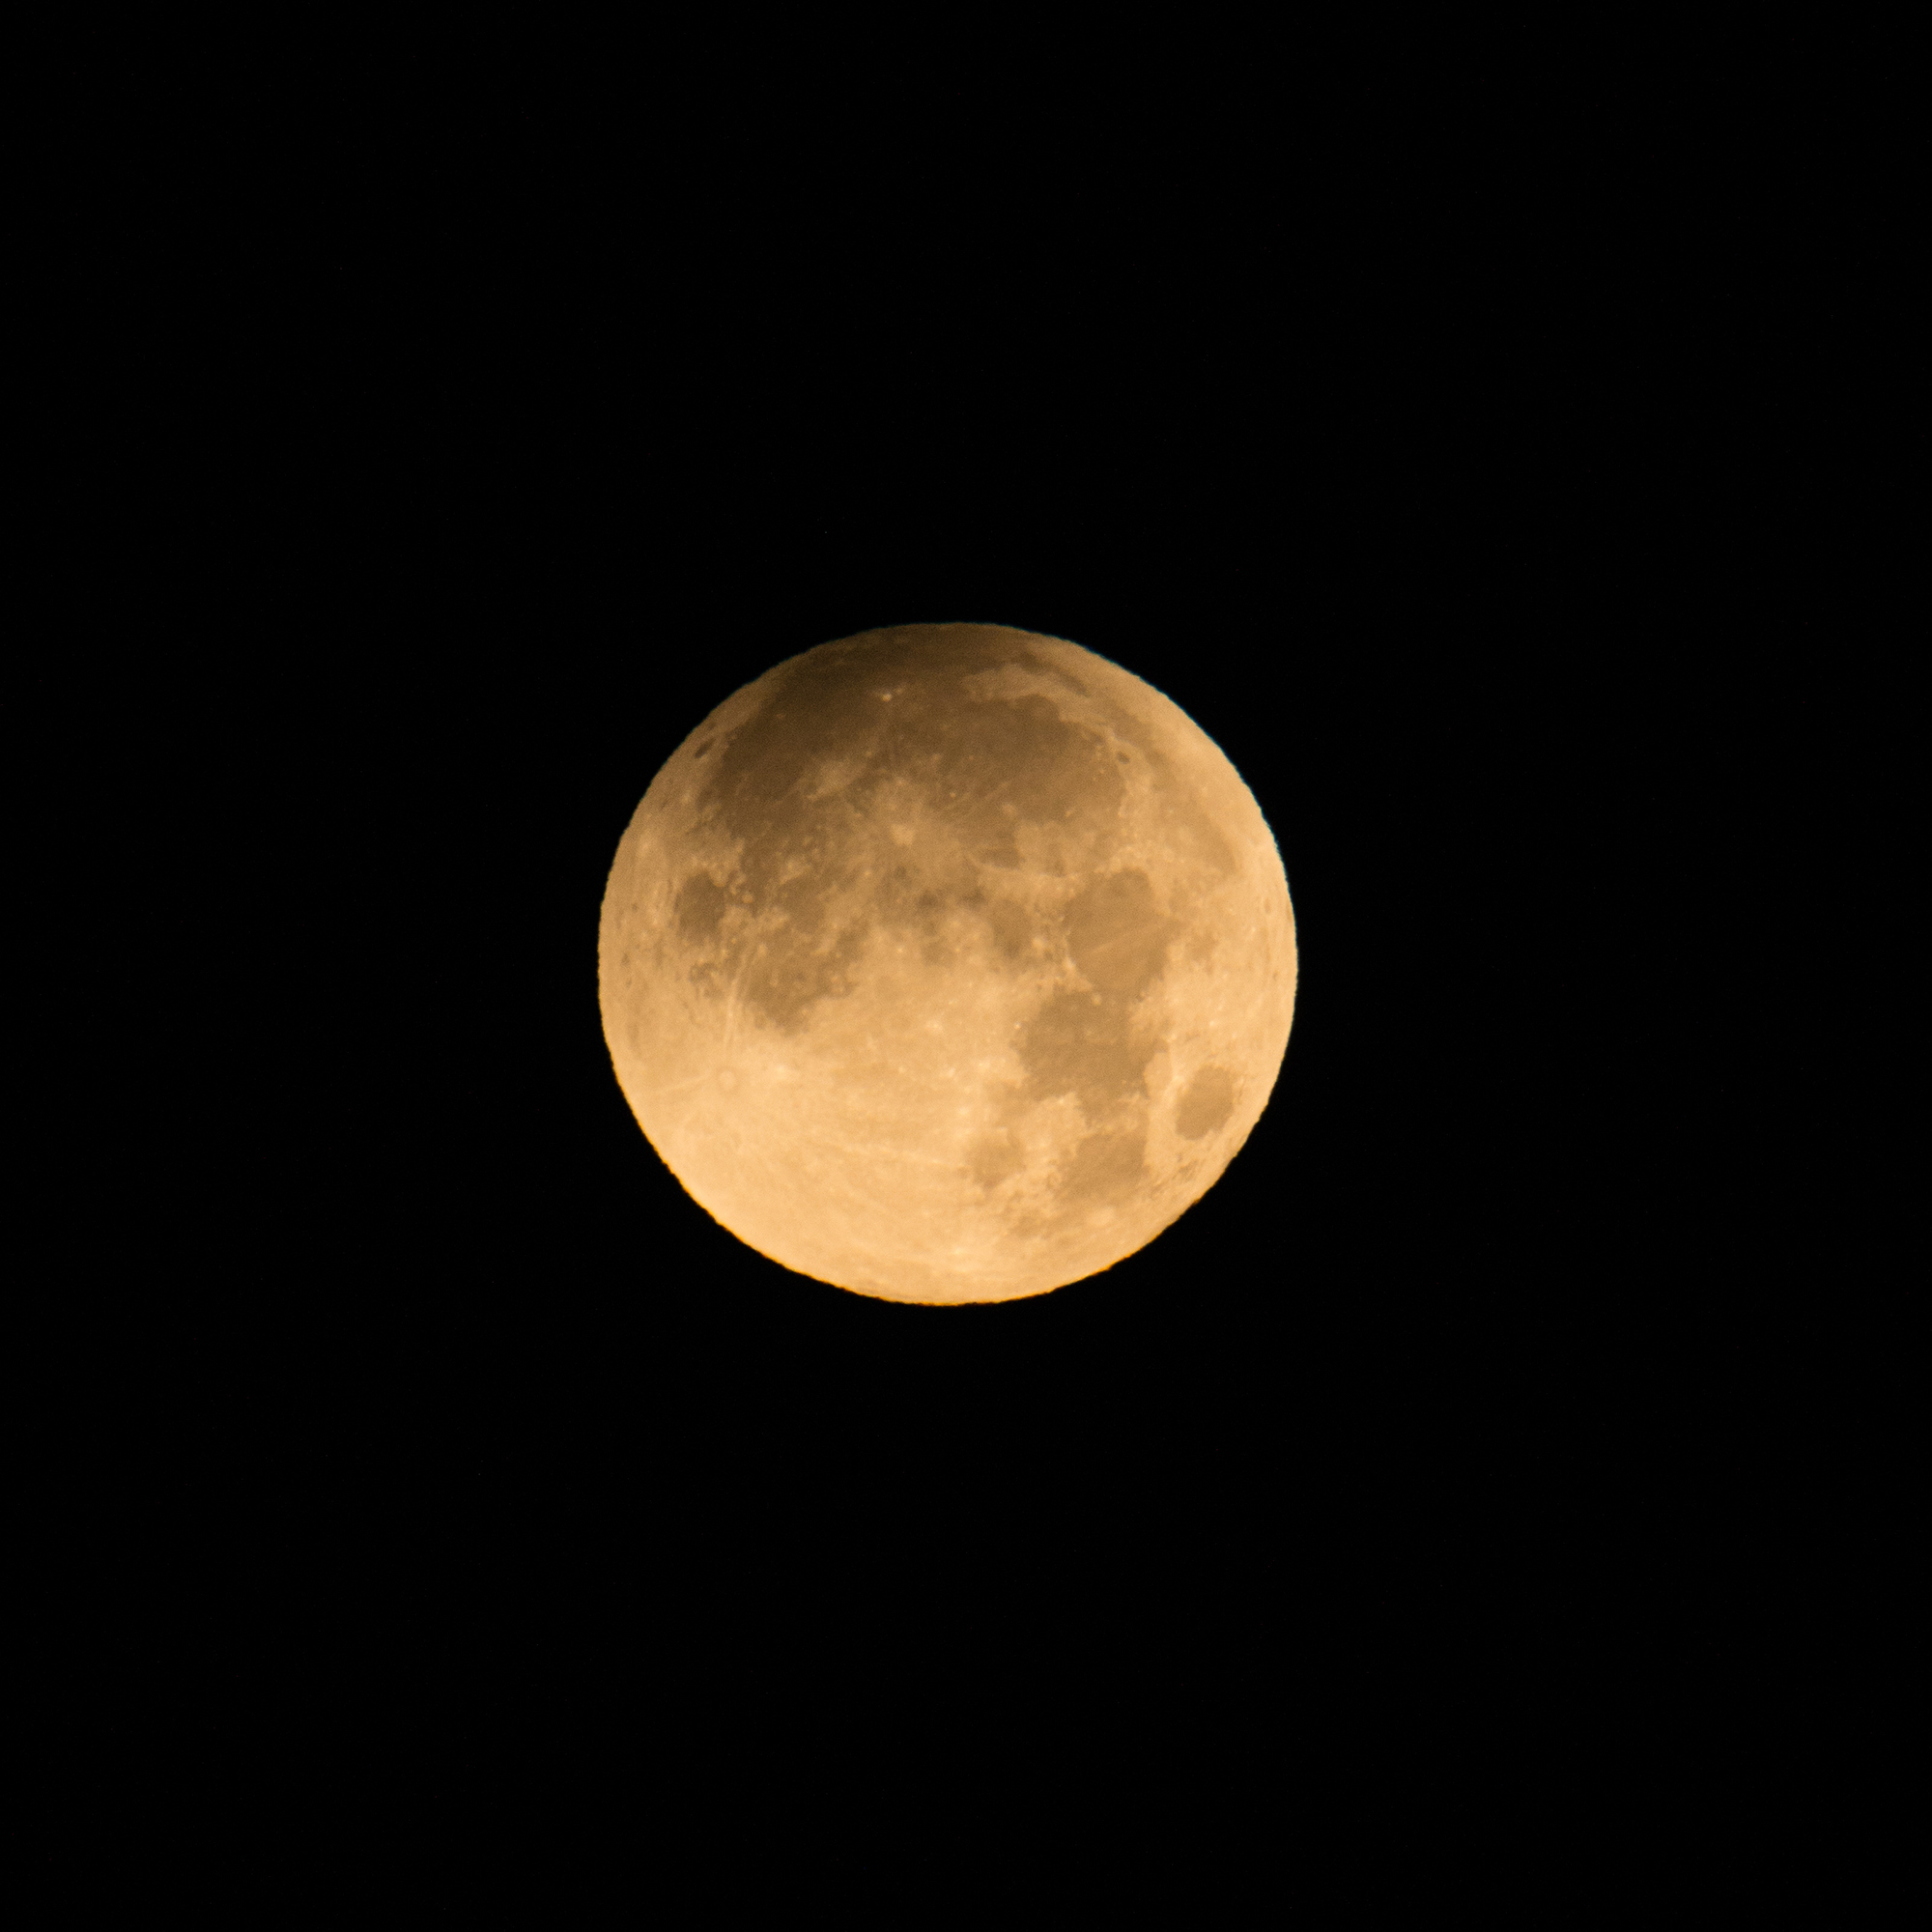 #bluemoon, #moon, #supermoon, #eclipse, #naples, #january31